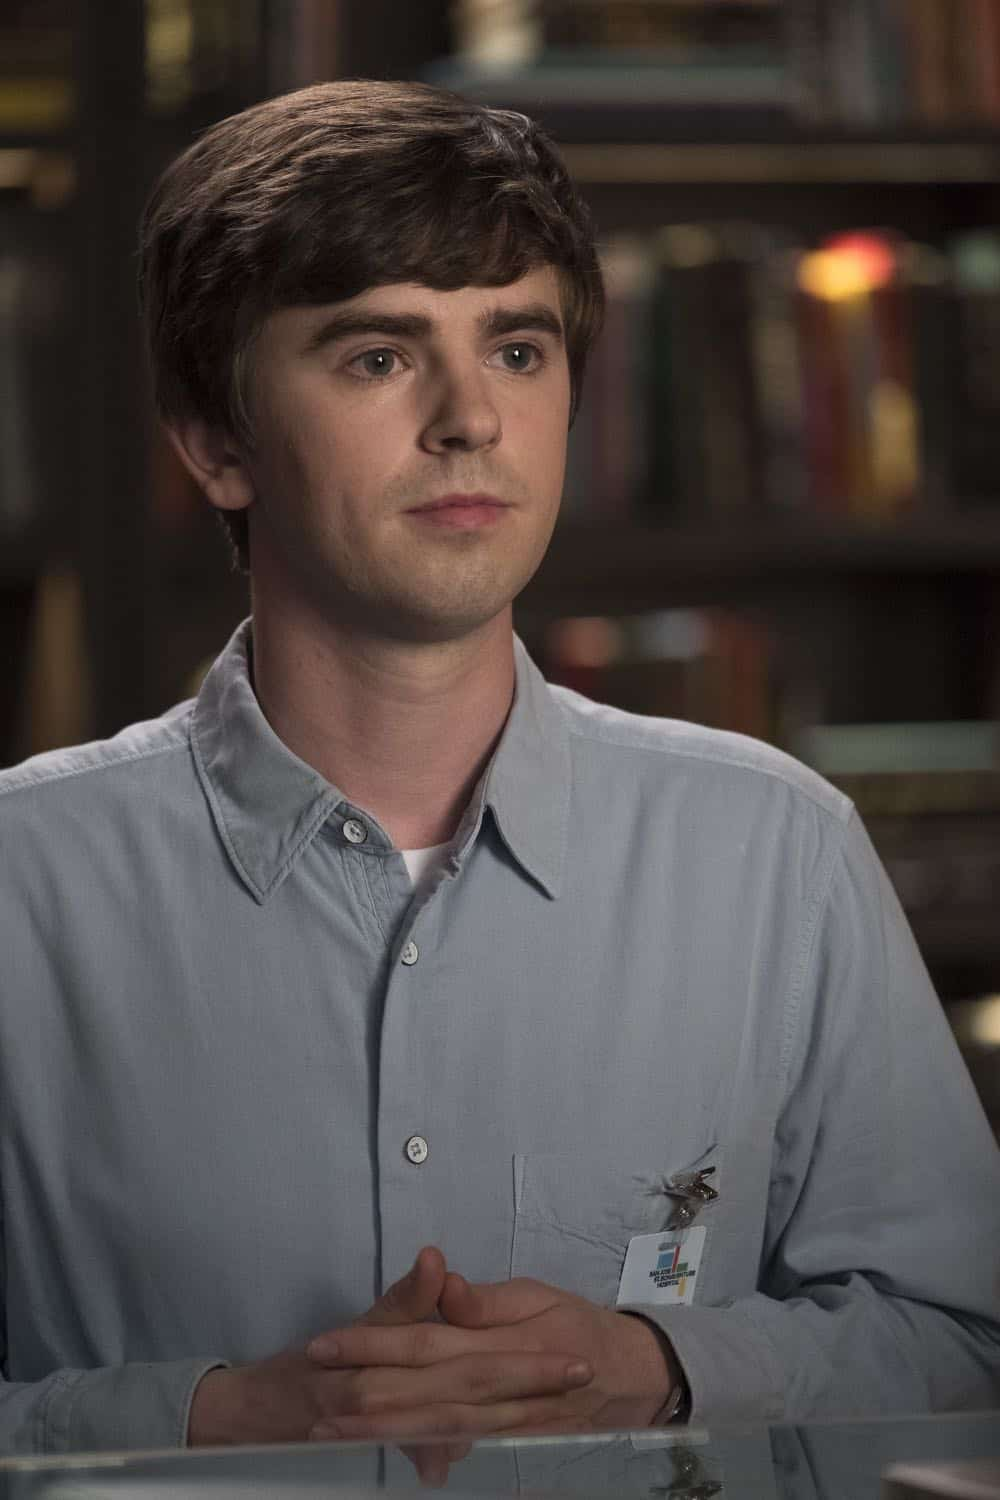 """THE GOOD DOCTOR - """"Hello"""" - Shaun's (Freddie Highmore) proposed treatment for a homeless patient puts him and Jared (Chuku Modu) in Andrews' (Hill Harper) crosshairs. Meanwhile, Claire (Antonia Thomas) tries to overcome Melendez's (Nicholas Gonzalez) reluctance to do a risky heart operation while Glassman (Richard Schiff) must overcome his personal feelings about his oncologist, Dr. Marina Blaize (guest star Lisa Edelstein), and face a difficult decision about his health, on the season premiere of """"The Good Doctor,"""" MONDAY, SEPT. 24 (10:00-11:00 p.m. EDT), on The ABC Television Network. (ABC/Jeff Weddell) FREDDIE HIGHMORE"""